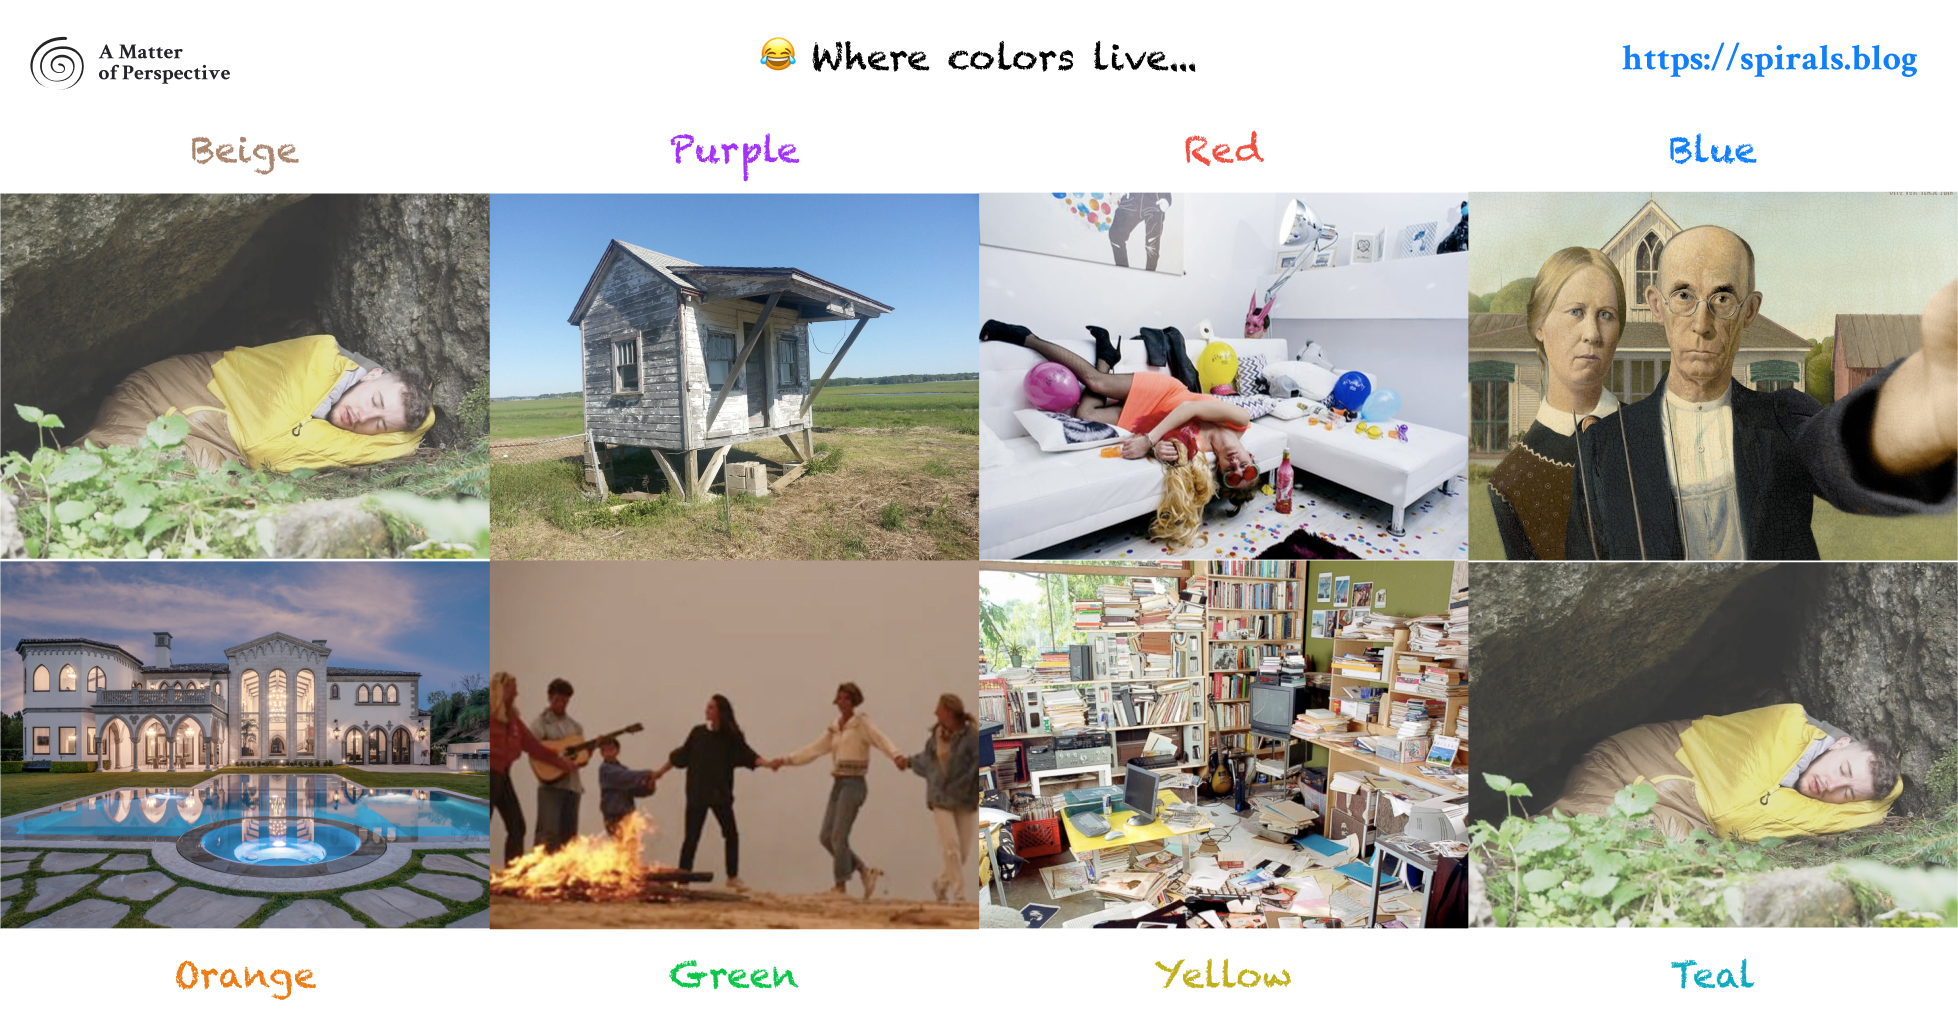 Where colors live